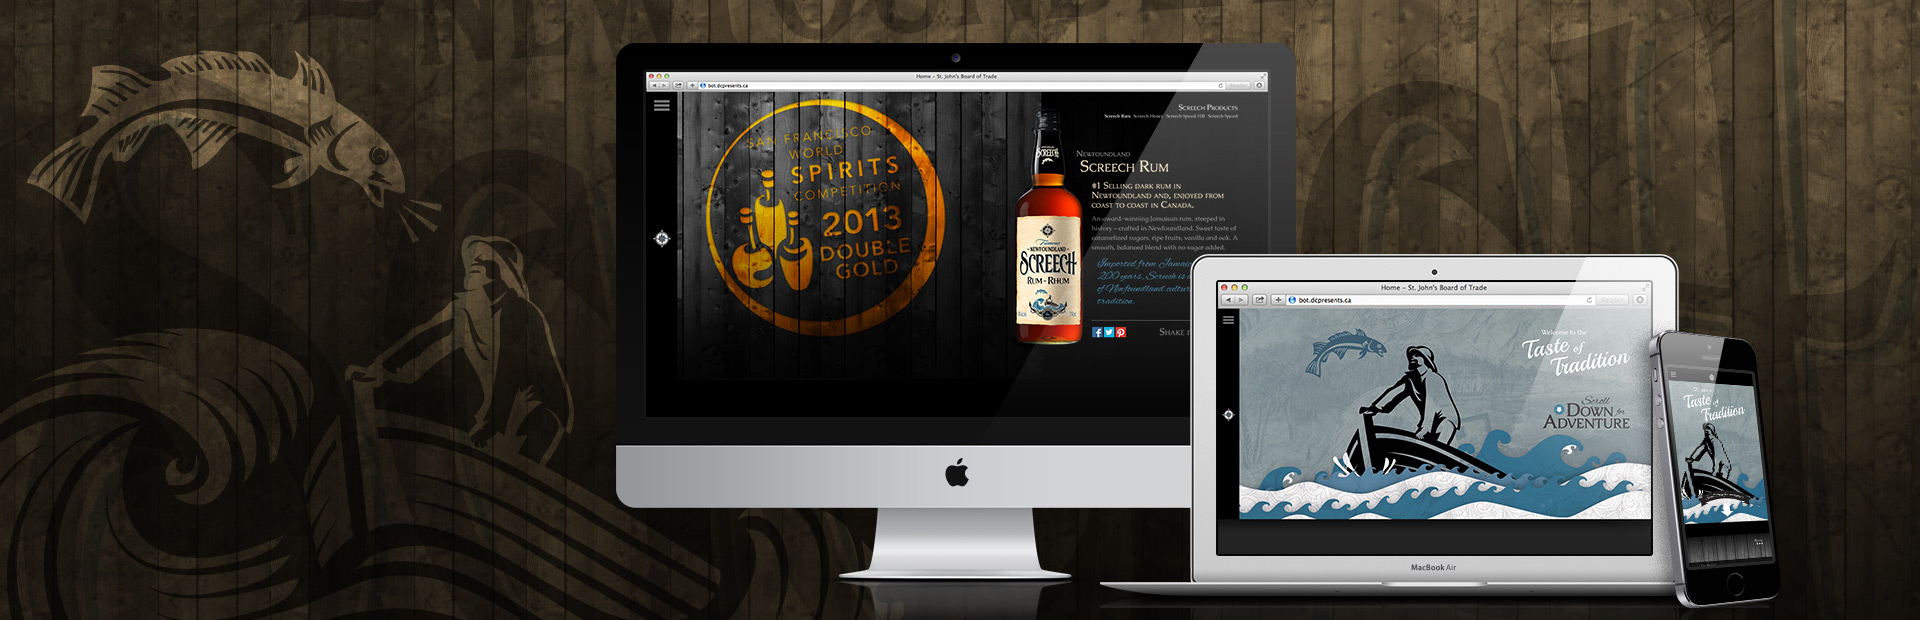 Screech Rum Website Redesign